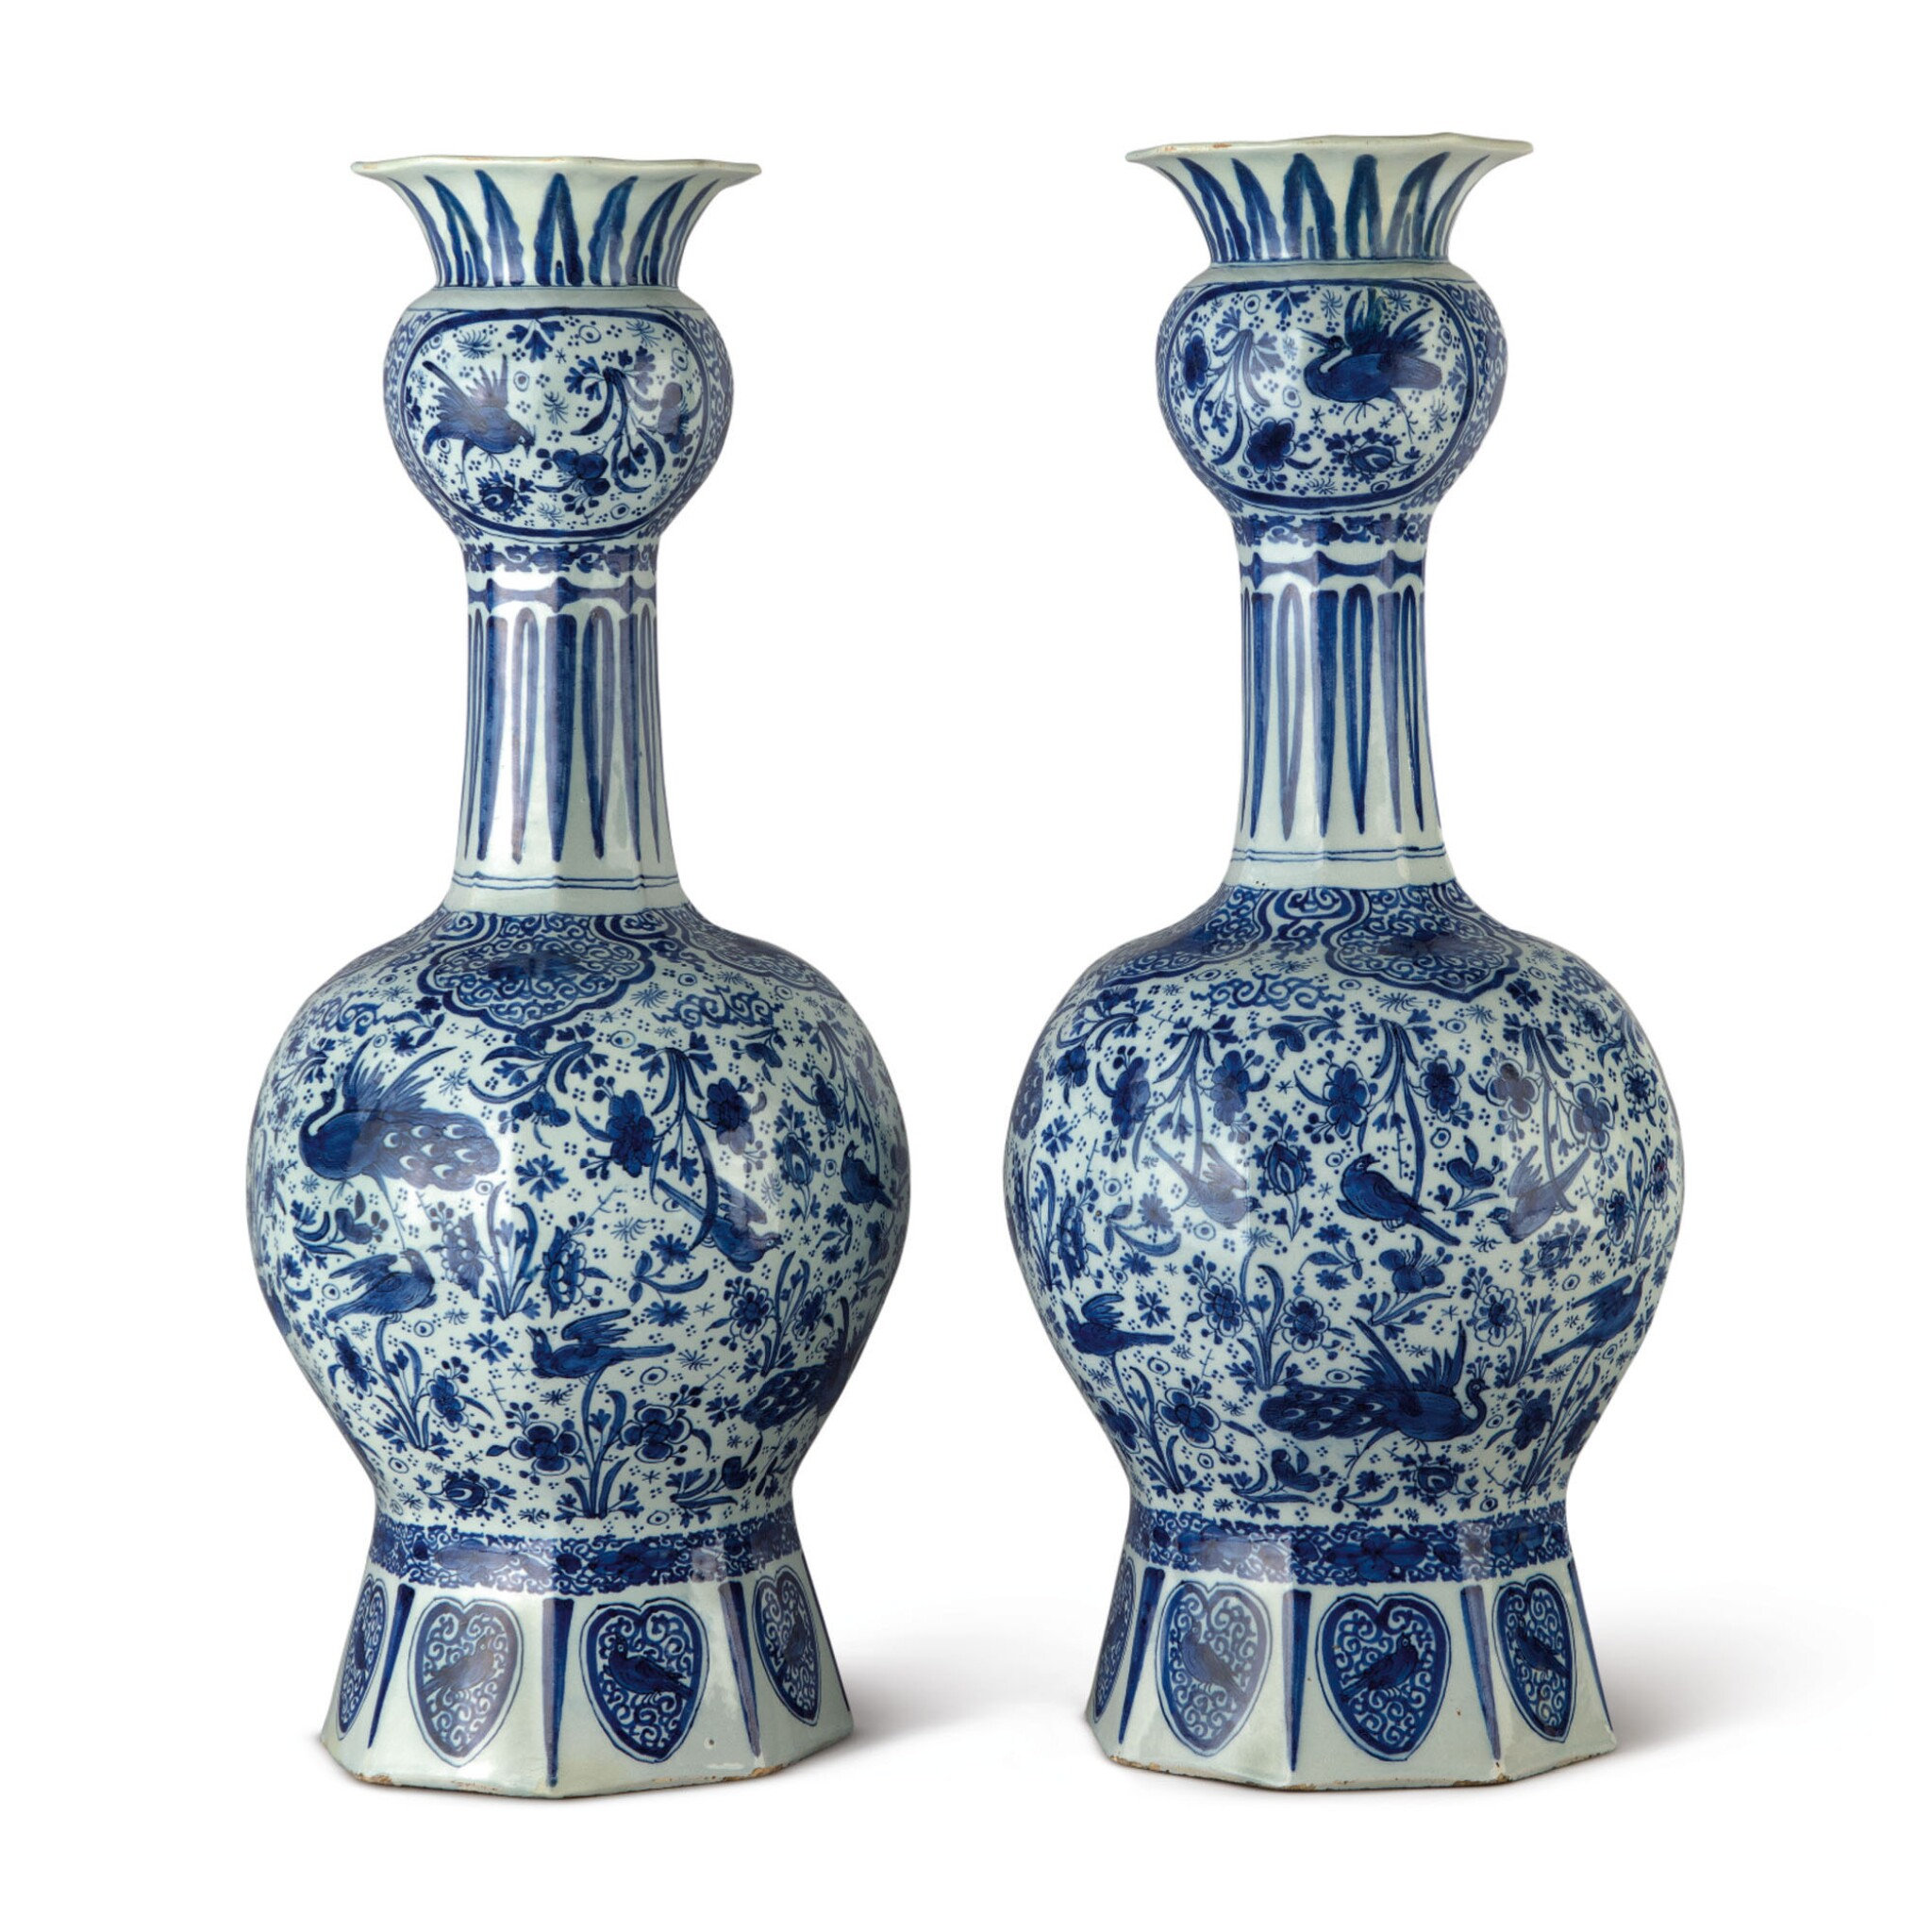 View 1 of Lot 512. A PAIR OF DUTCH DELFT BLUE AND WHITE LARGE VASES, CIRCA 1700.